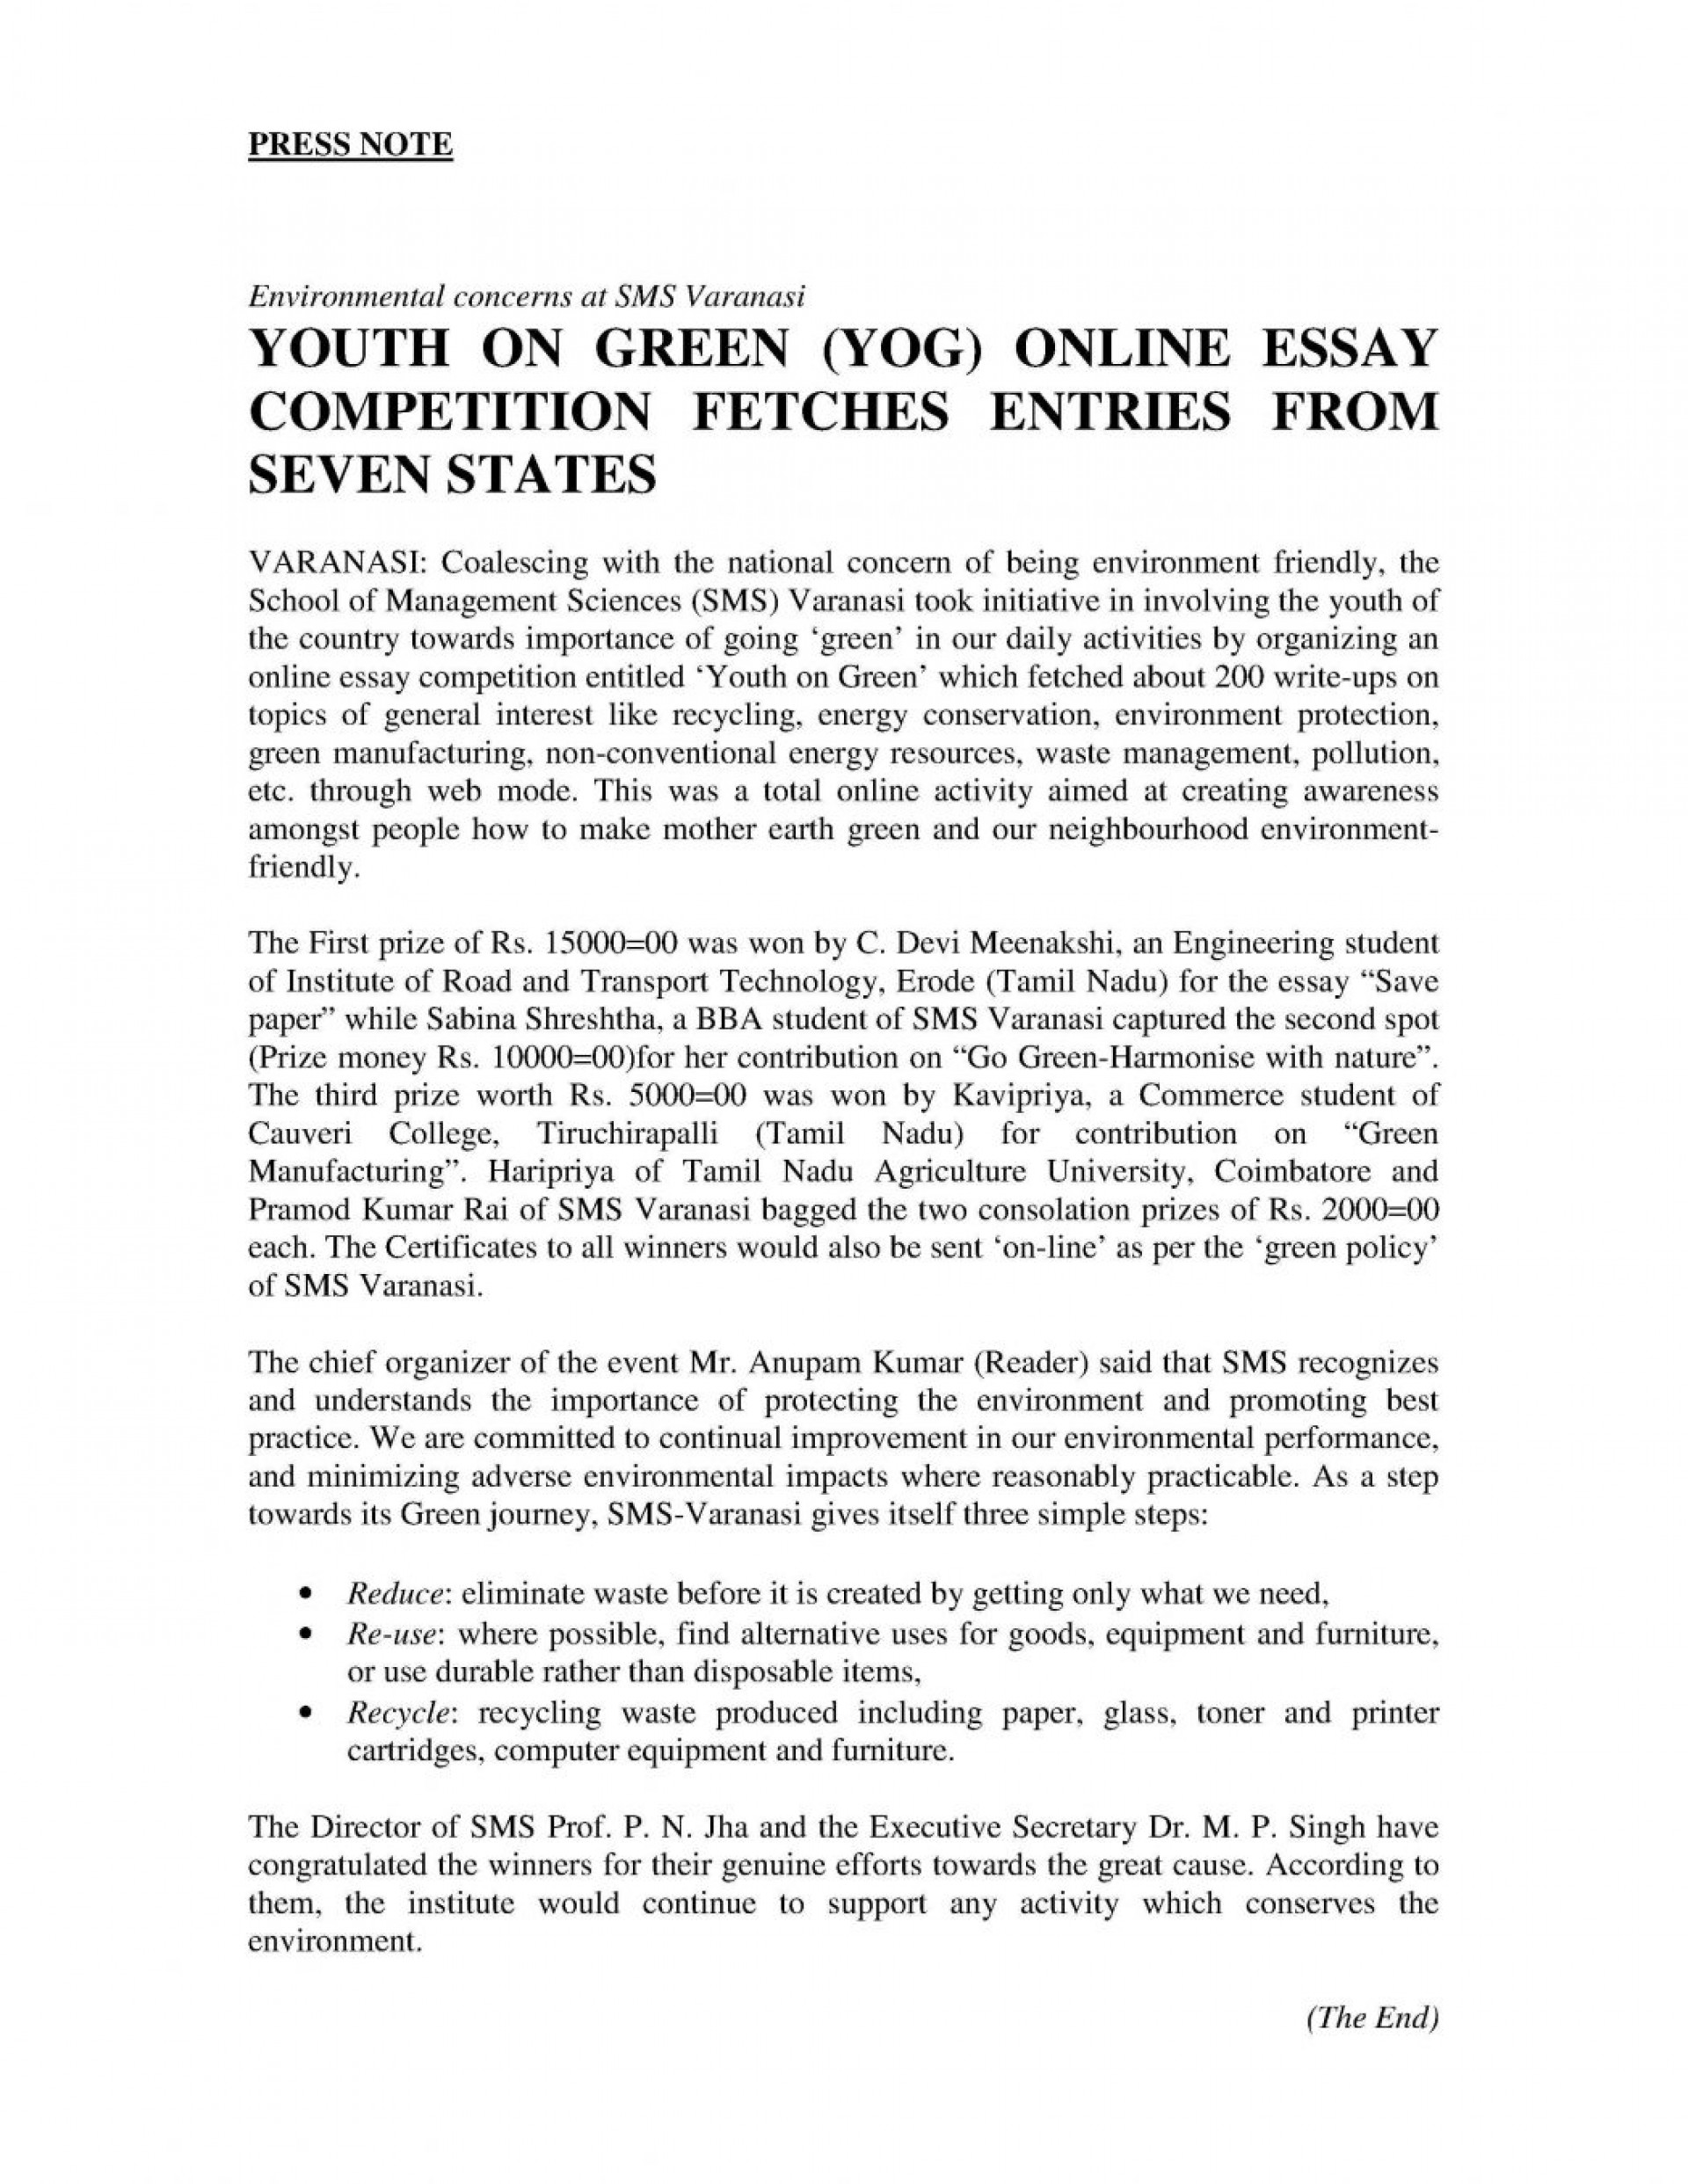 essay example does technology make us more alone argumentative    essay example does technology make us more alone argumentative healthy  eating essays online yog press